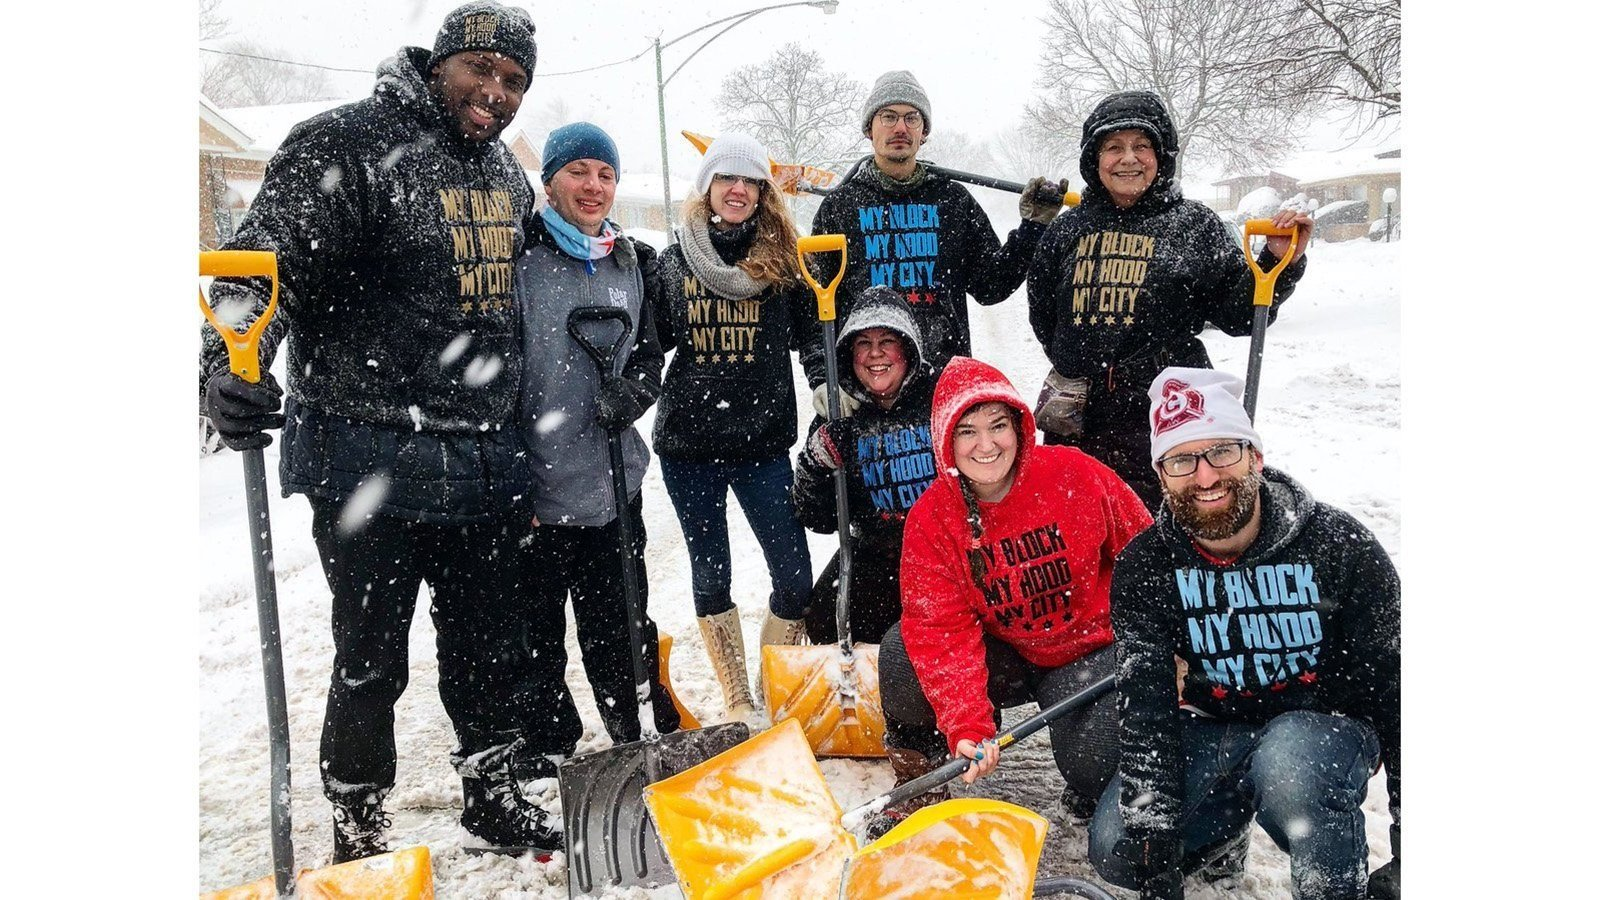 Volunteers help shovel snow for the elderly on the South Side of Chicago.